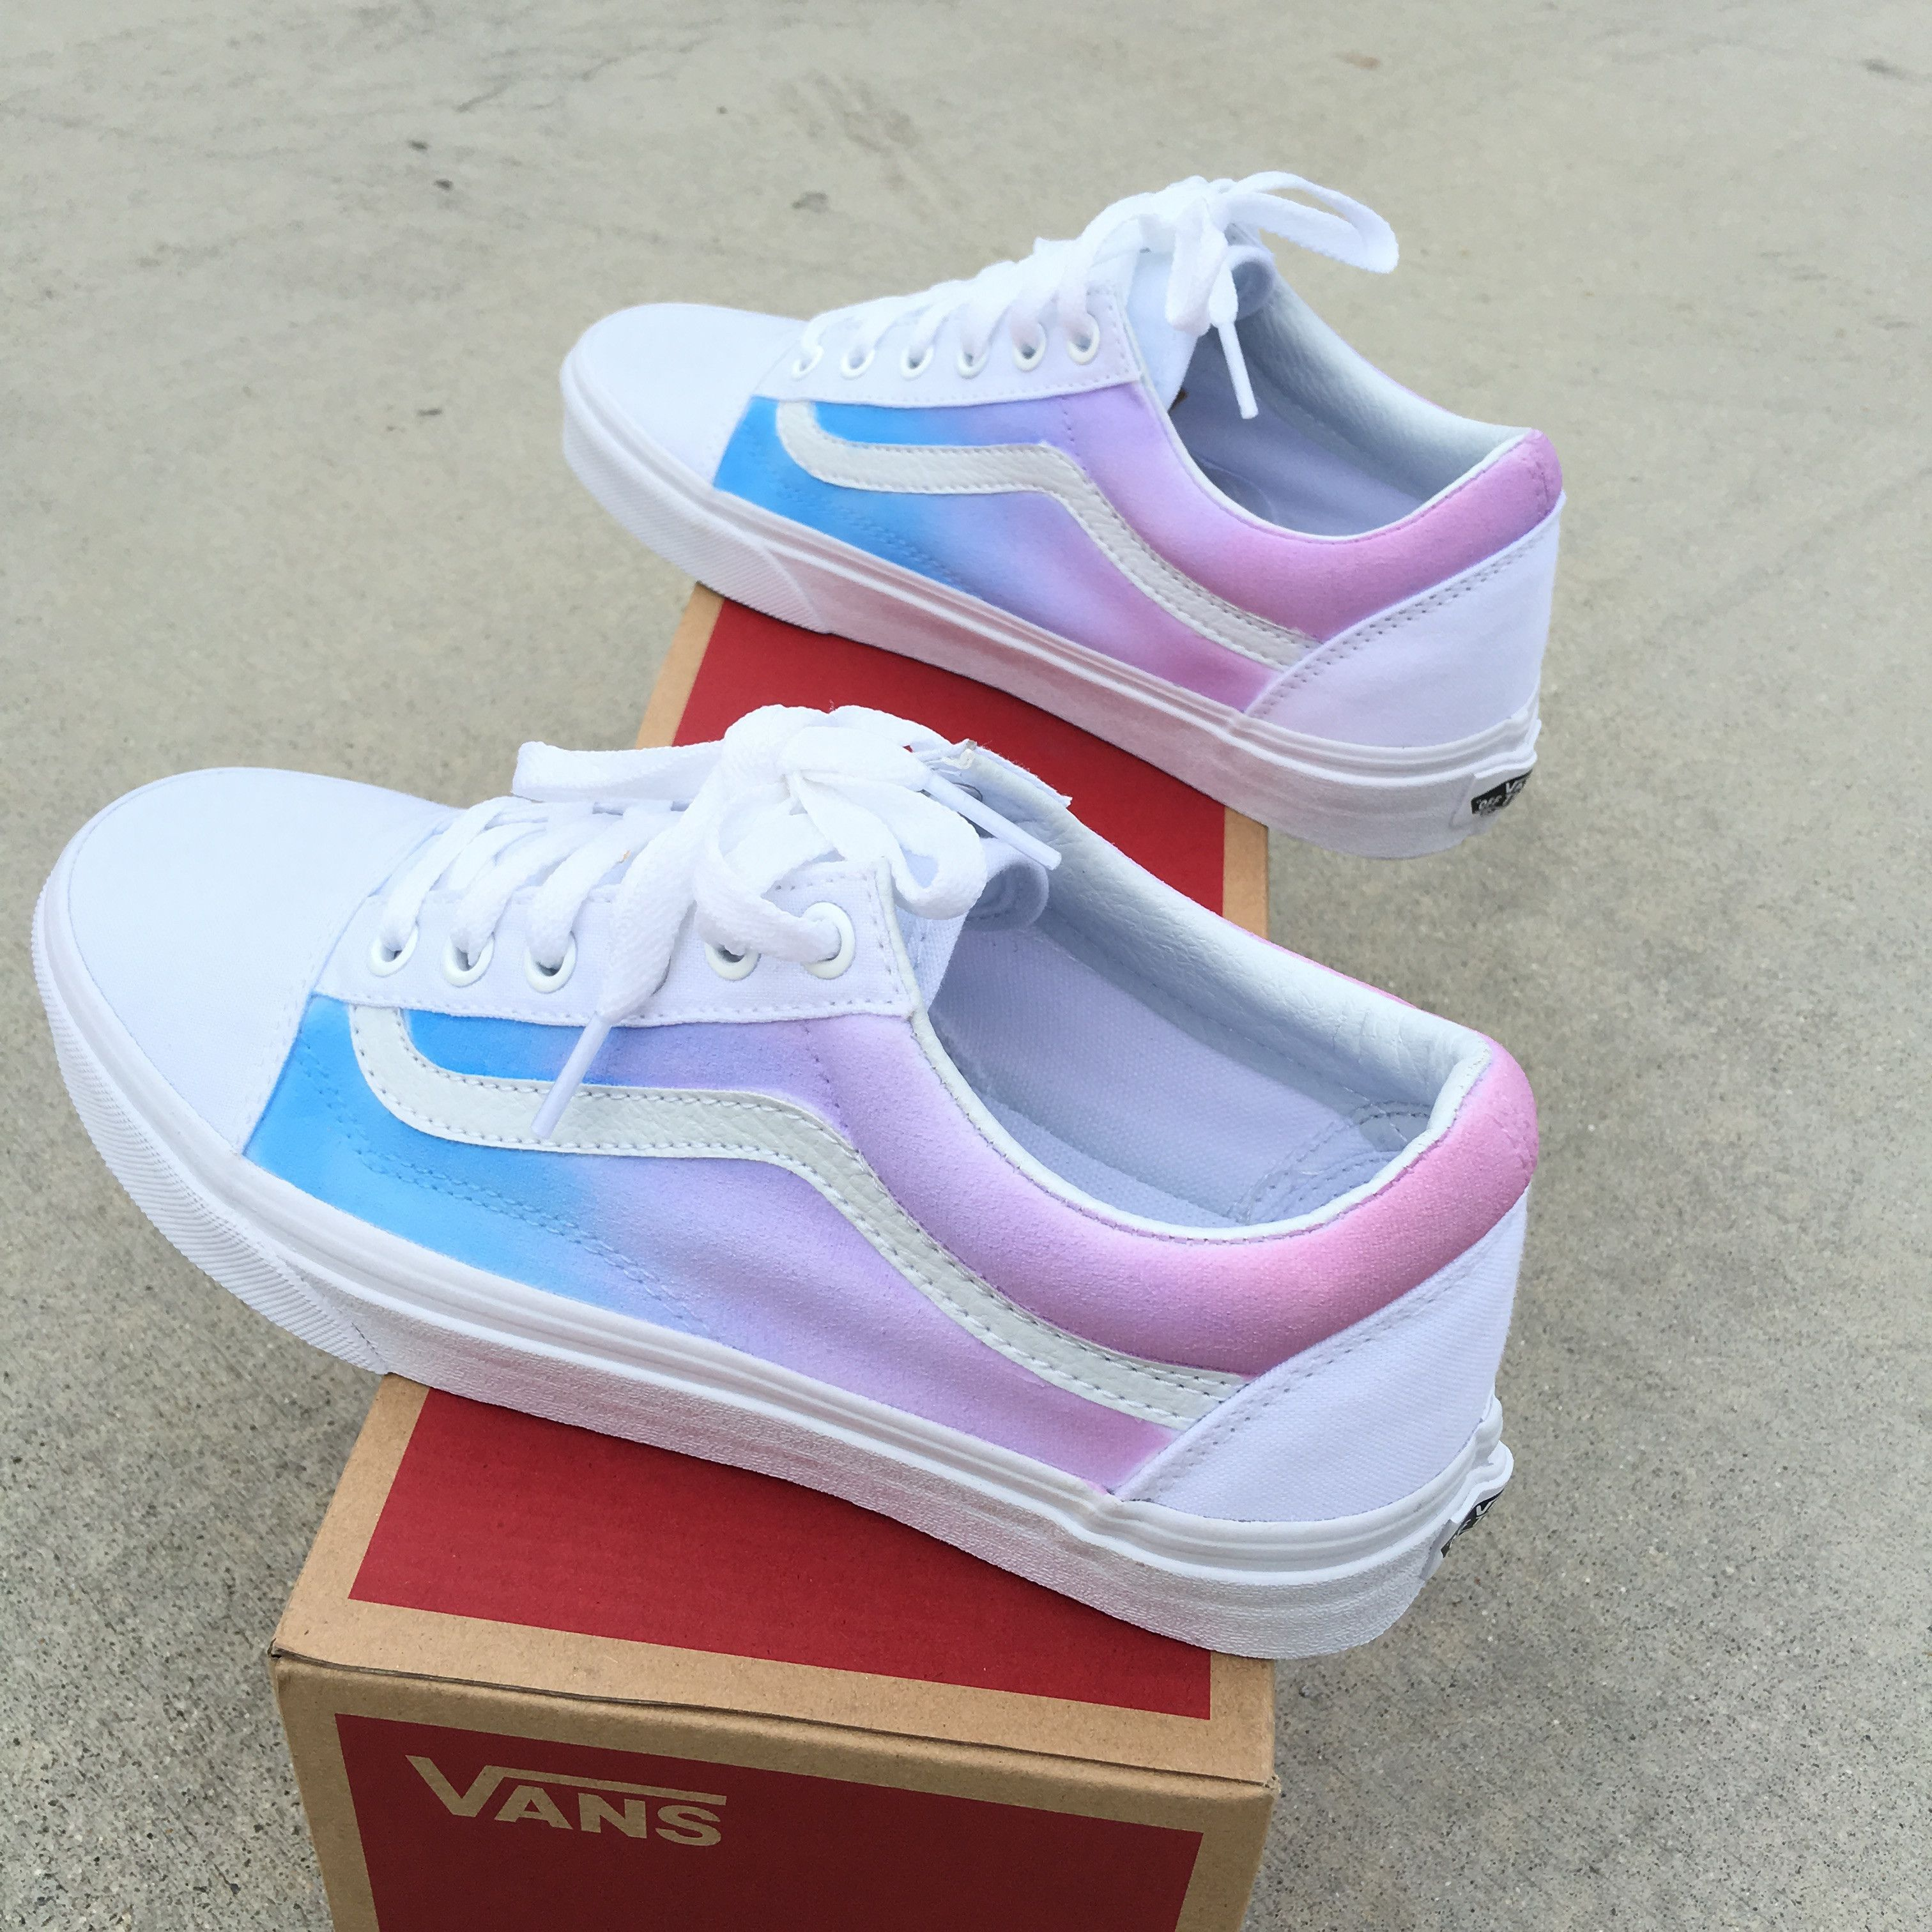 a00732371a These True White Vans Old Skool  sneakers have been painted with a pastel  color ombre gradient on the sides of the shoes. The light blue color starts  ...